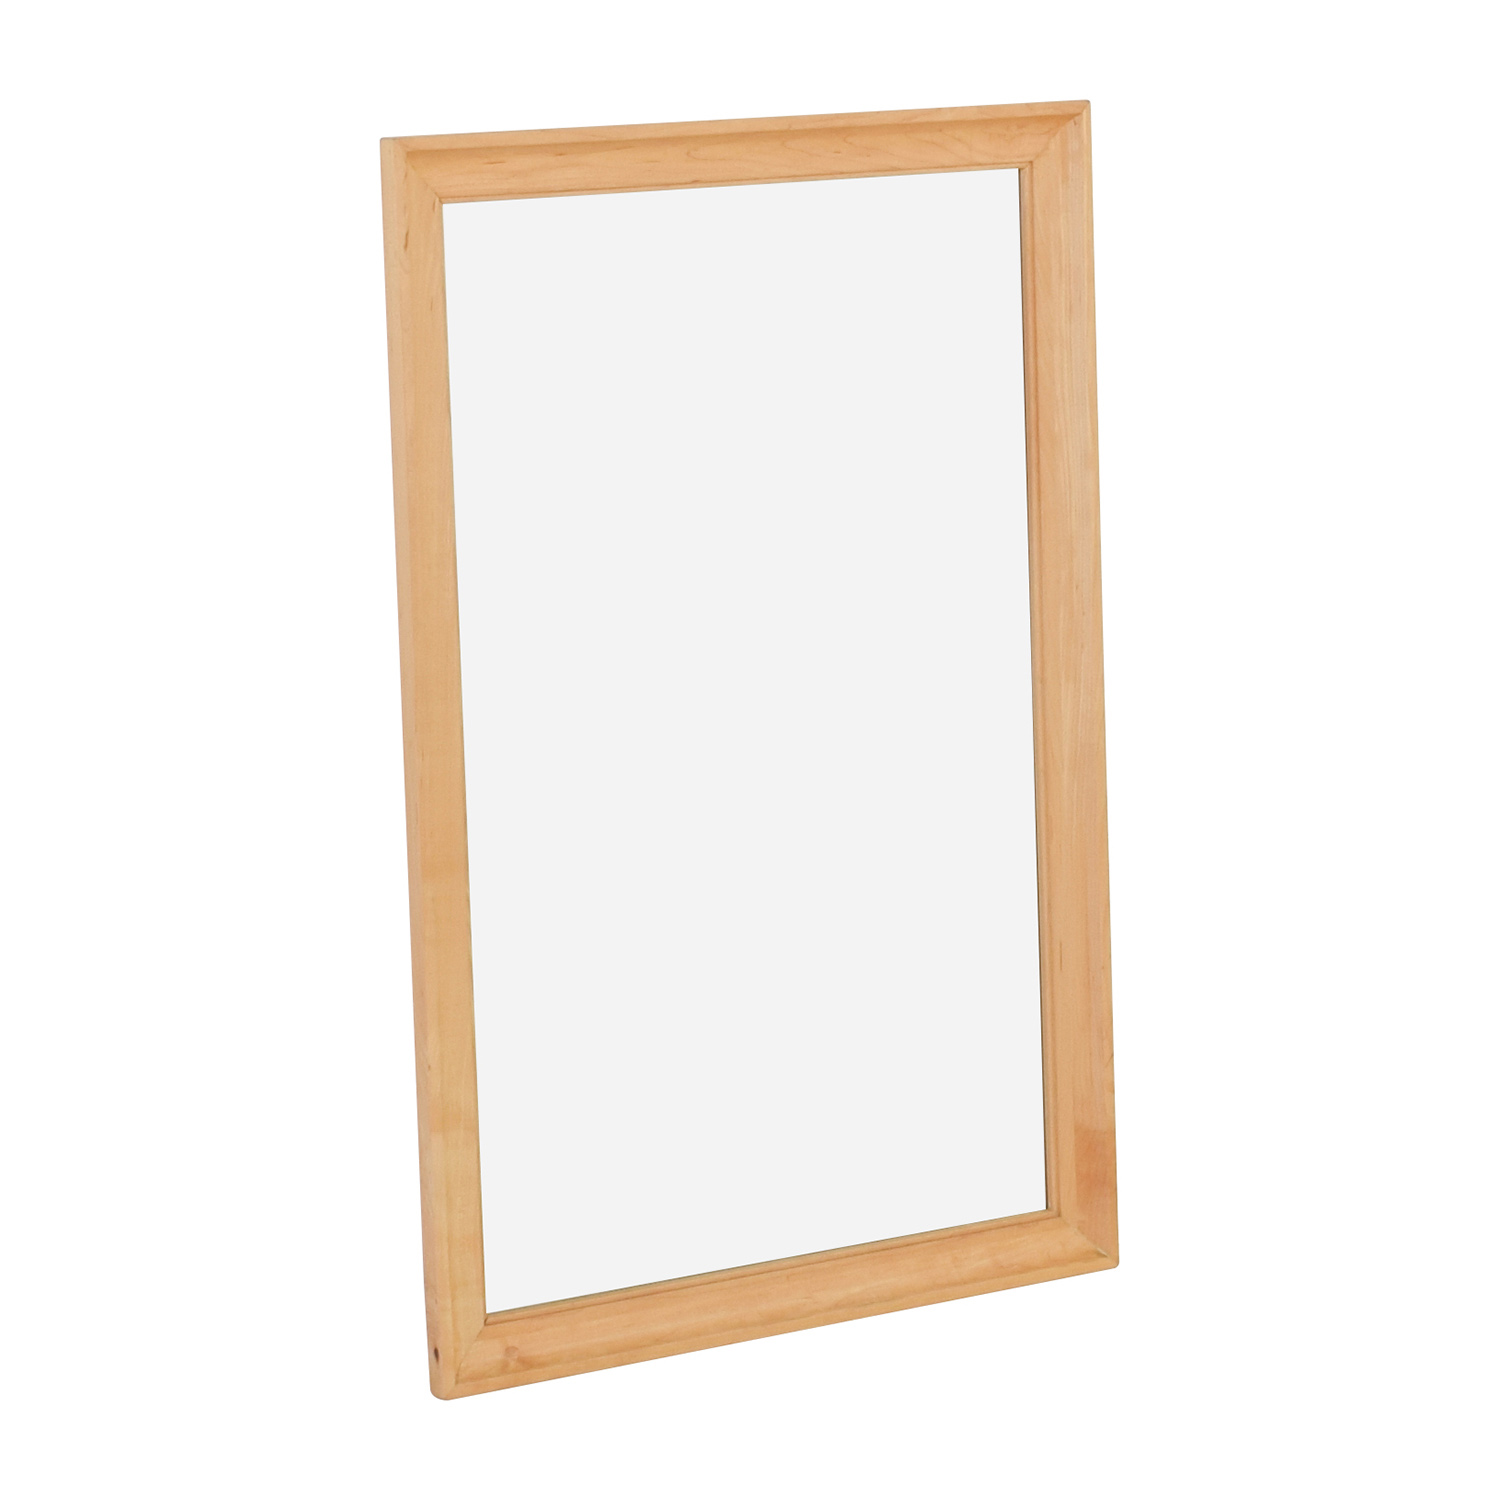 Stanley Furnitire Stanley Furniture Maple Wood Frame Mirror